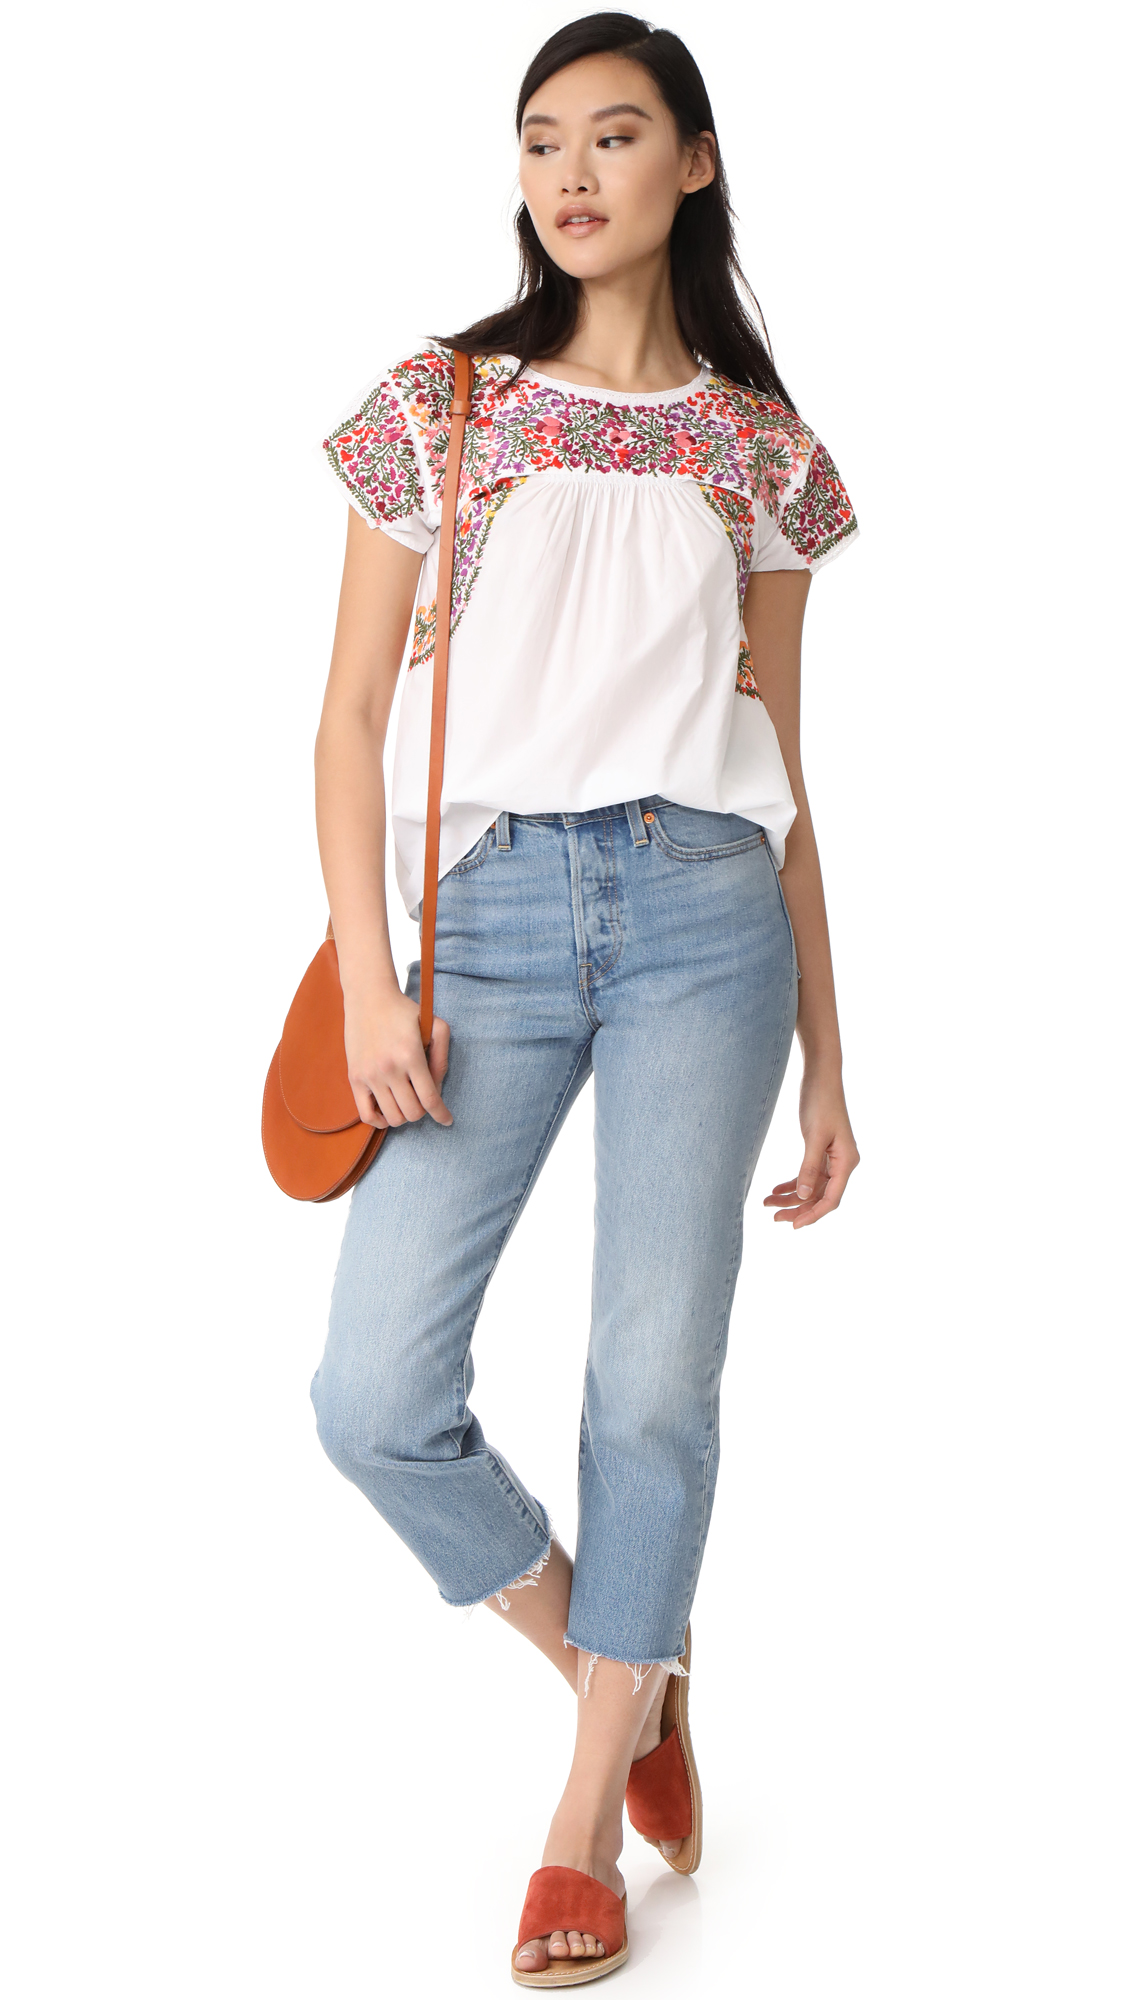 484e8897a86680 Madewell Fleur Embroidered Top